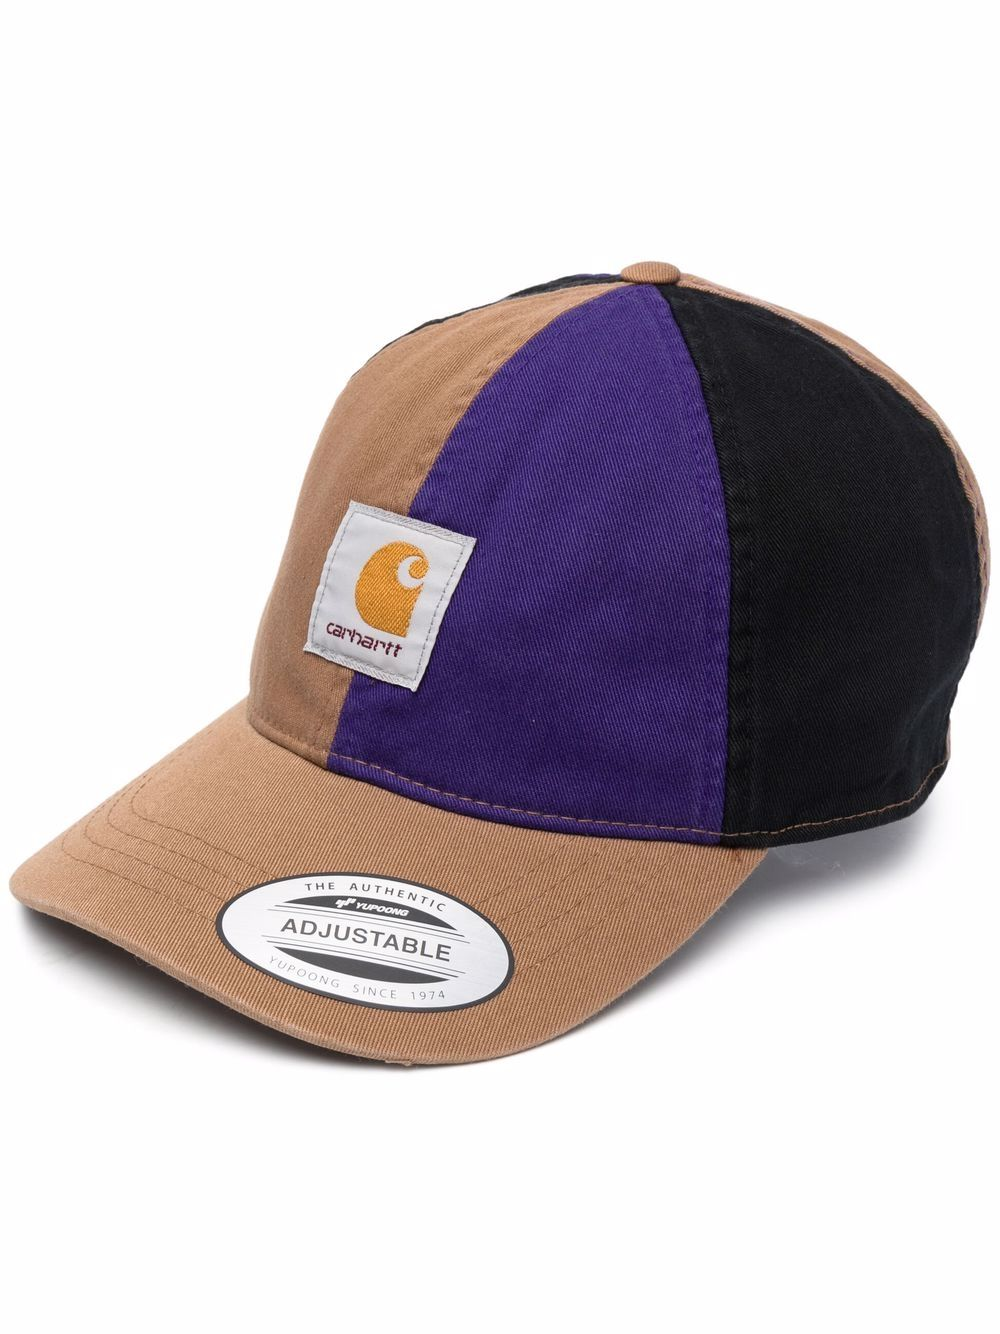 tricolor hat unisex in cotton CARHARTT WIP | Hats | I0295600FU.XX